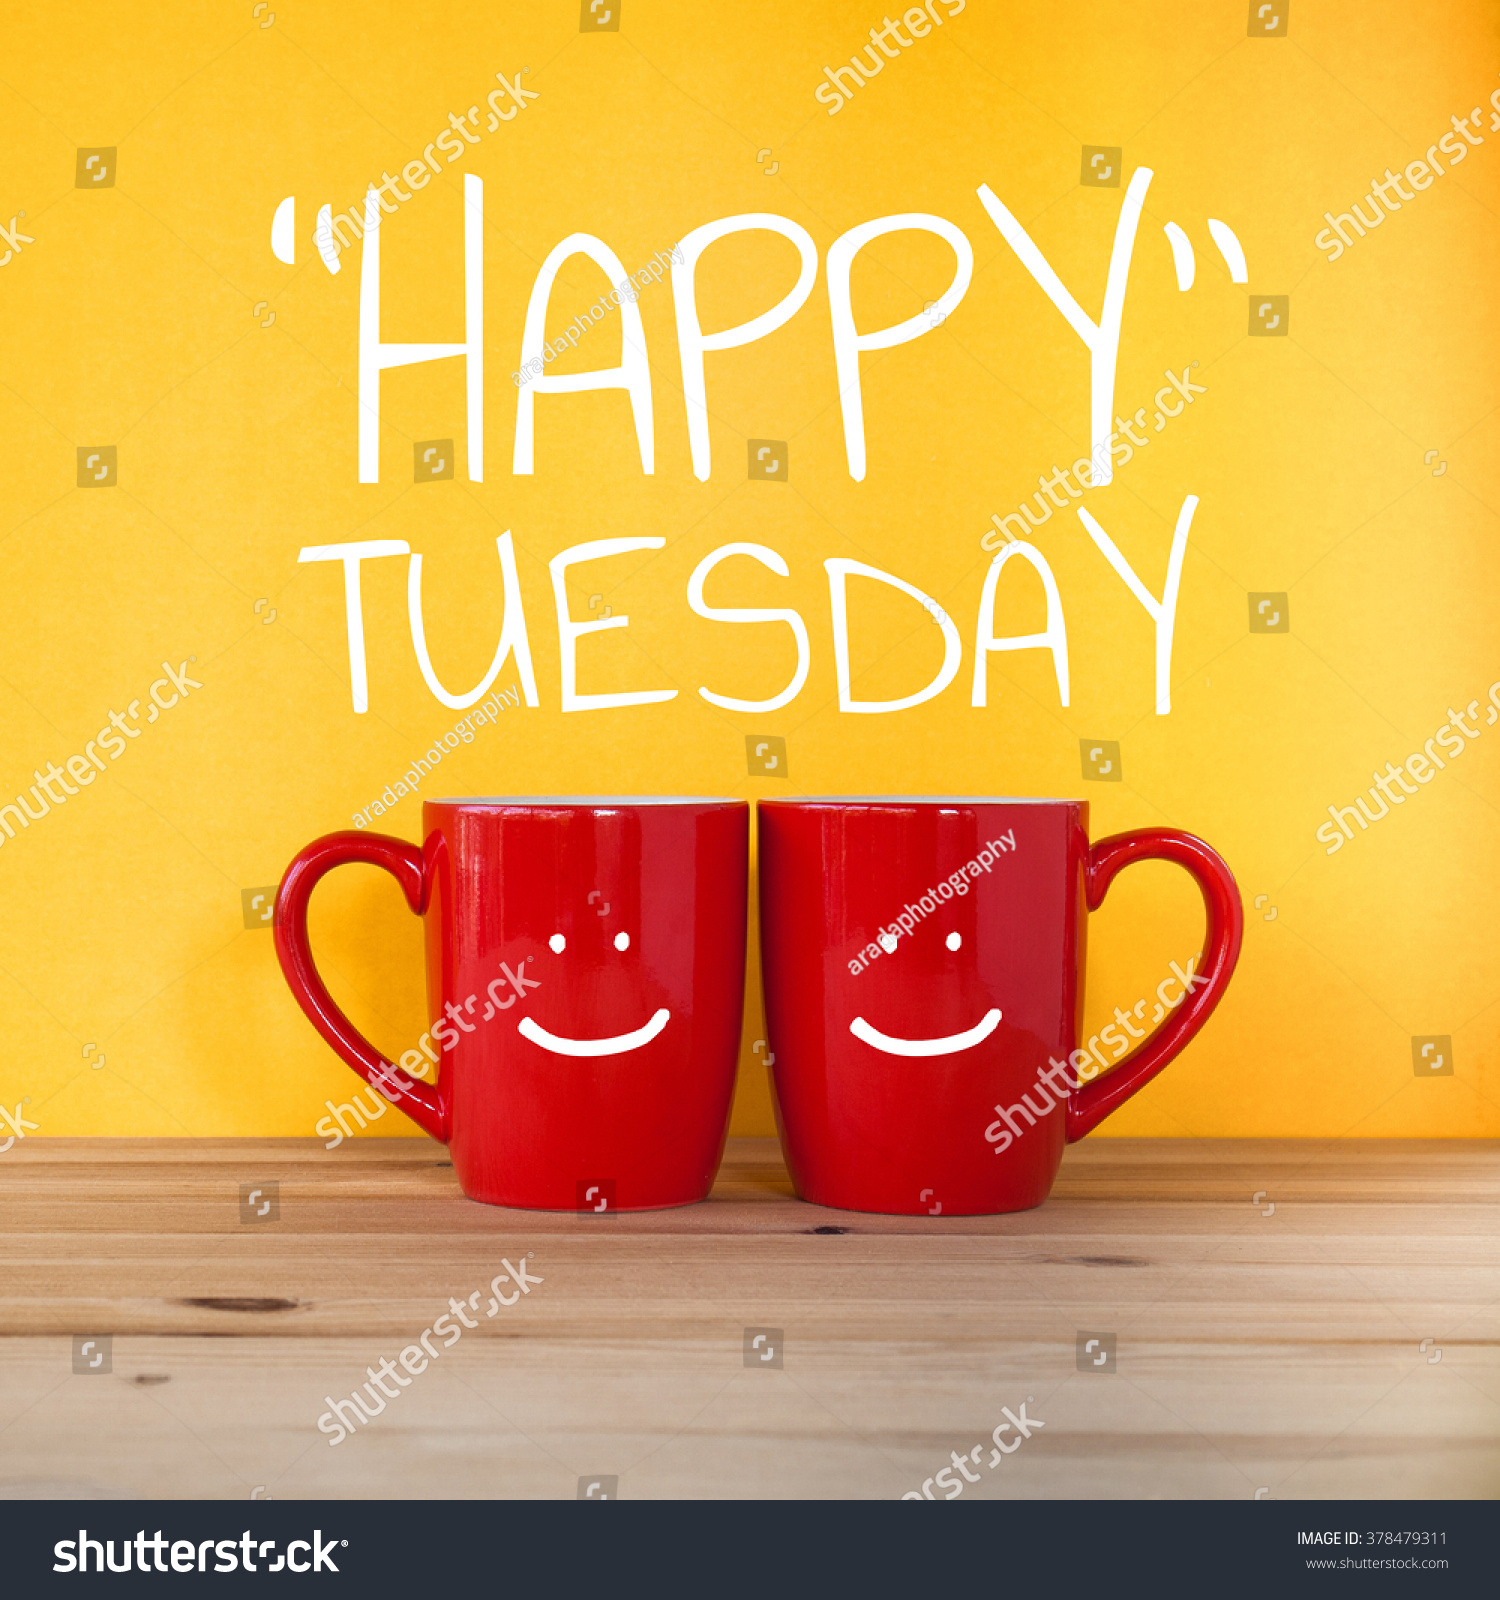 https://image.shutterstock.com/z/stock-photo-happy-tuesday-word-two-cups-of-coffee-and-stand-together-to-be-heart-shape-on-yellow-background-378479311.jpg